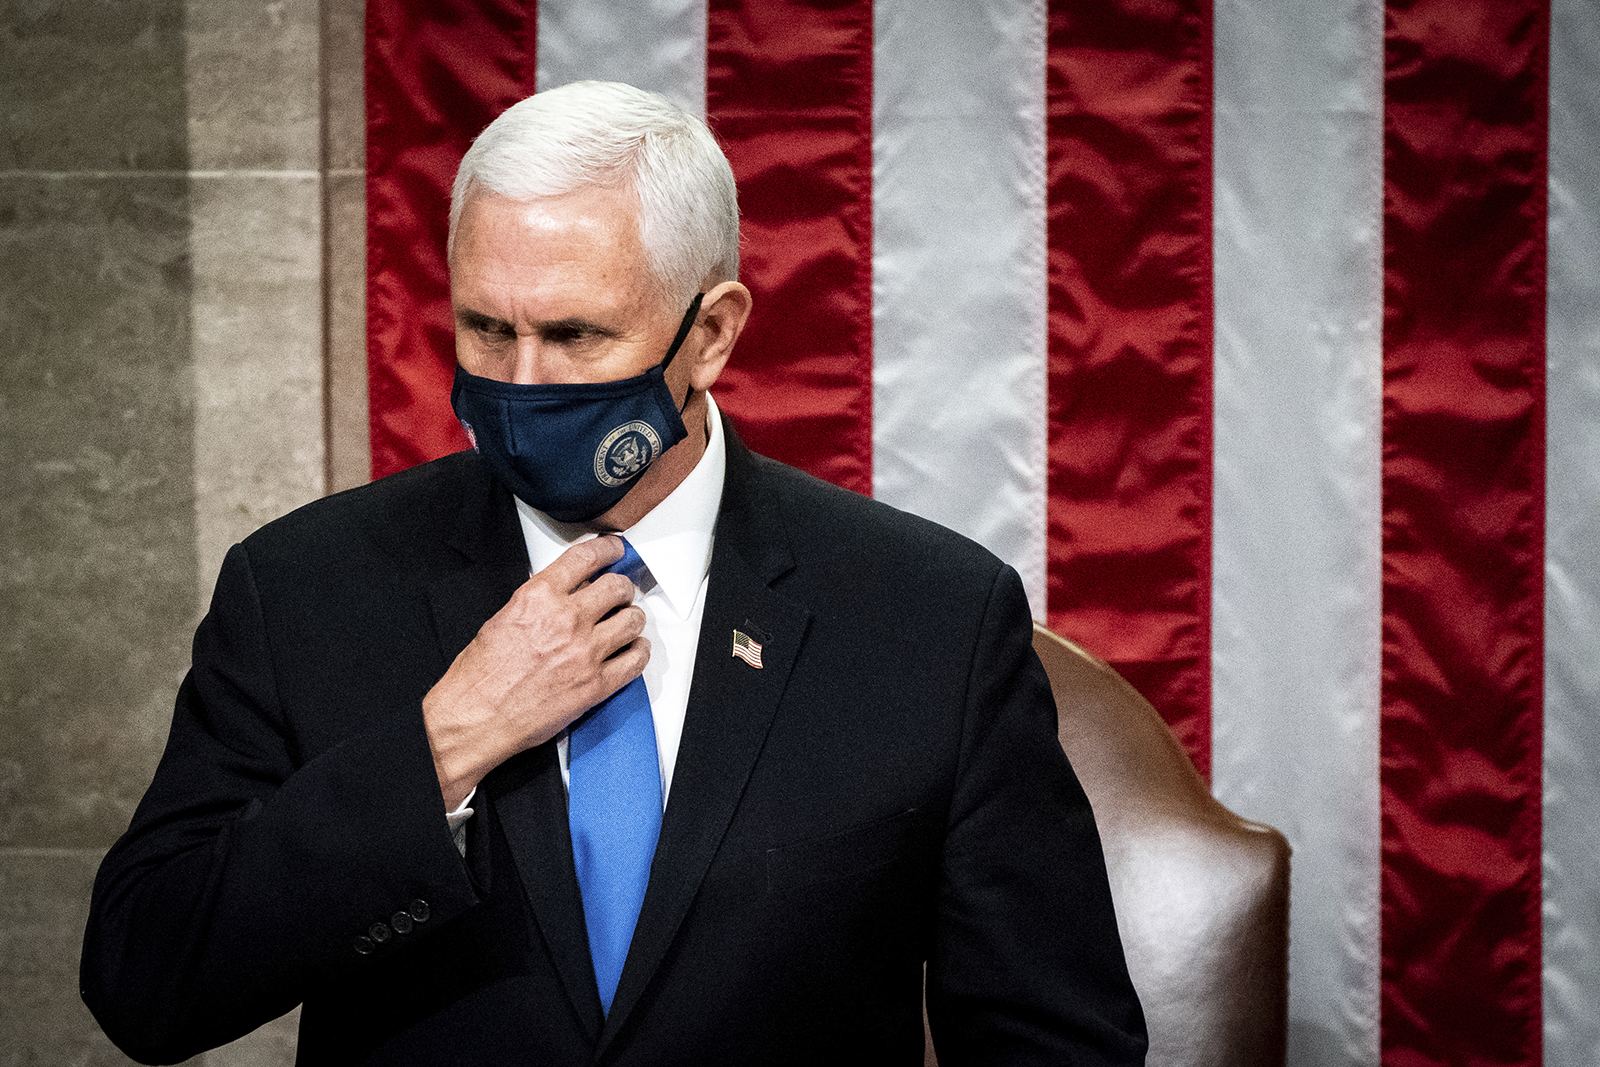 Vice President Mike Pence officiates as a joint session of the House and Senate reconvenes to confirm the Electoral College votes at the Capitol on Wednesday, January 6.